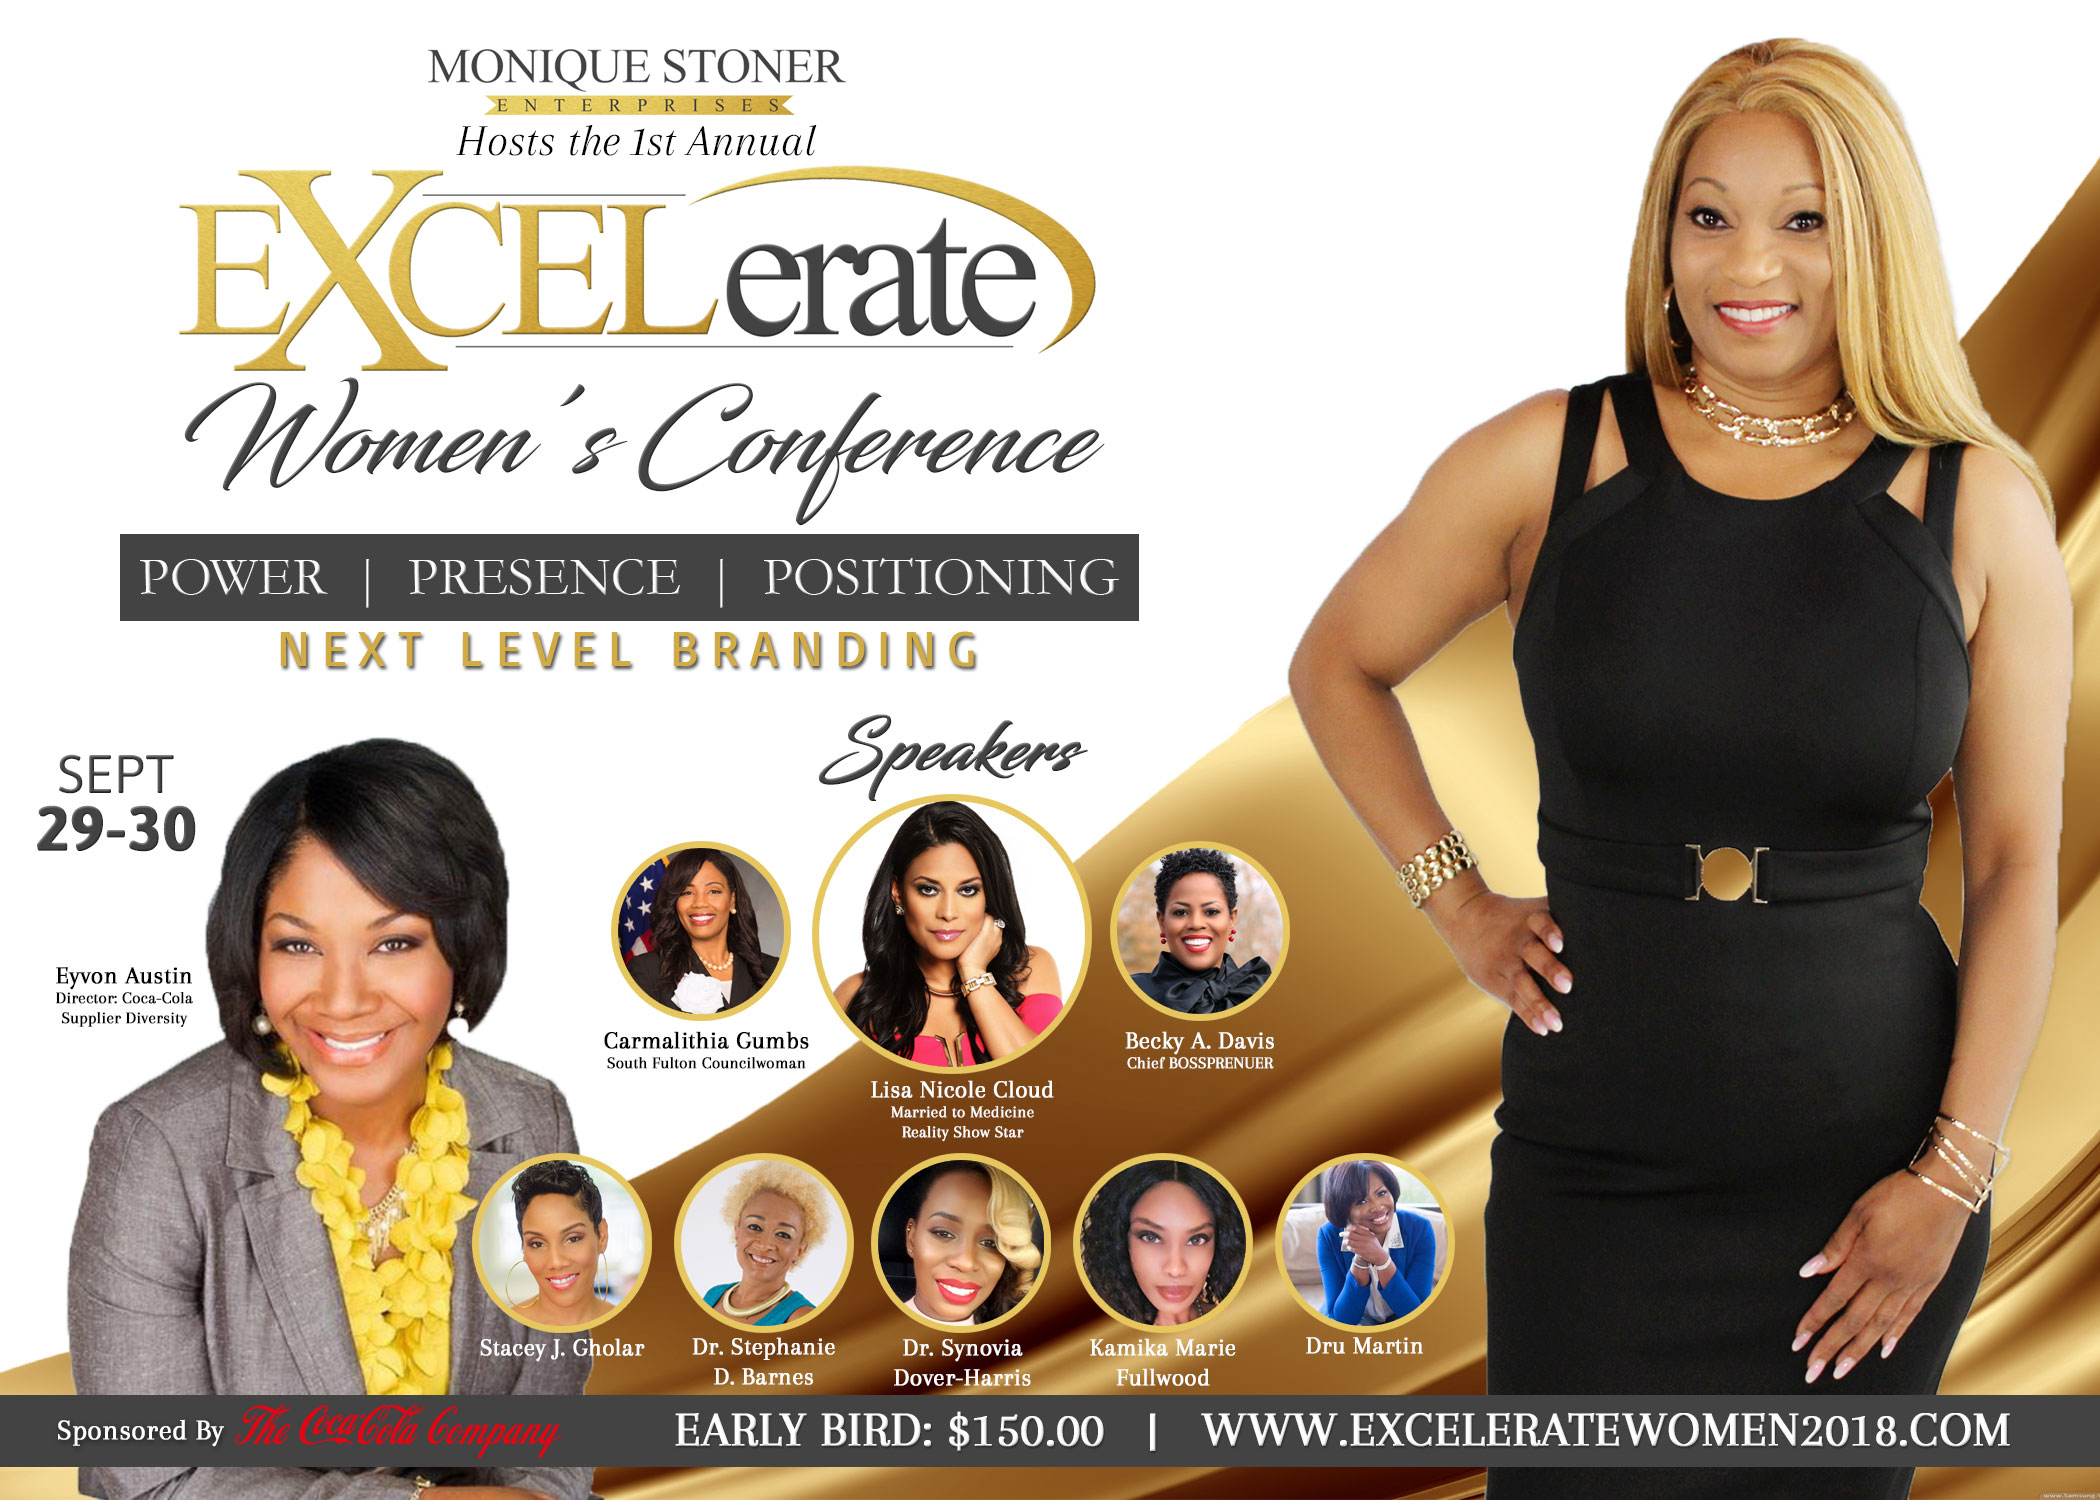 EXCELerate Women's Conference Flyer